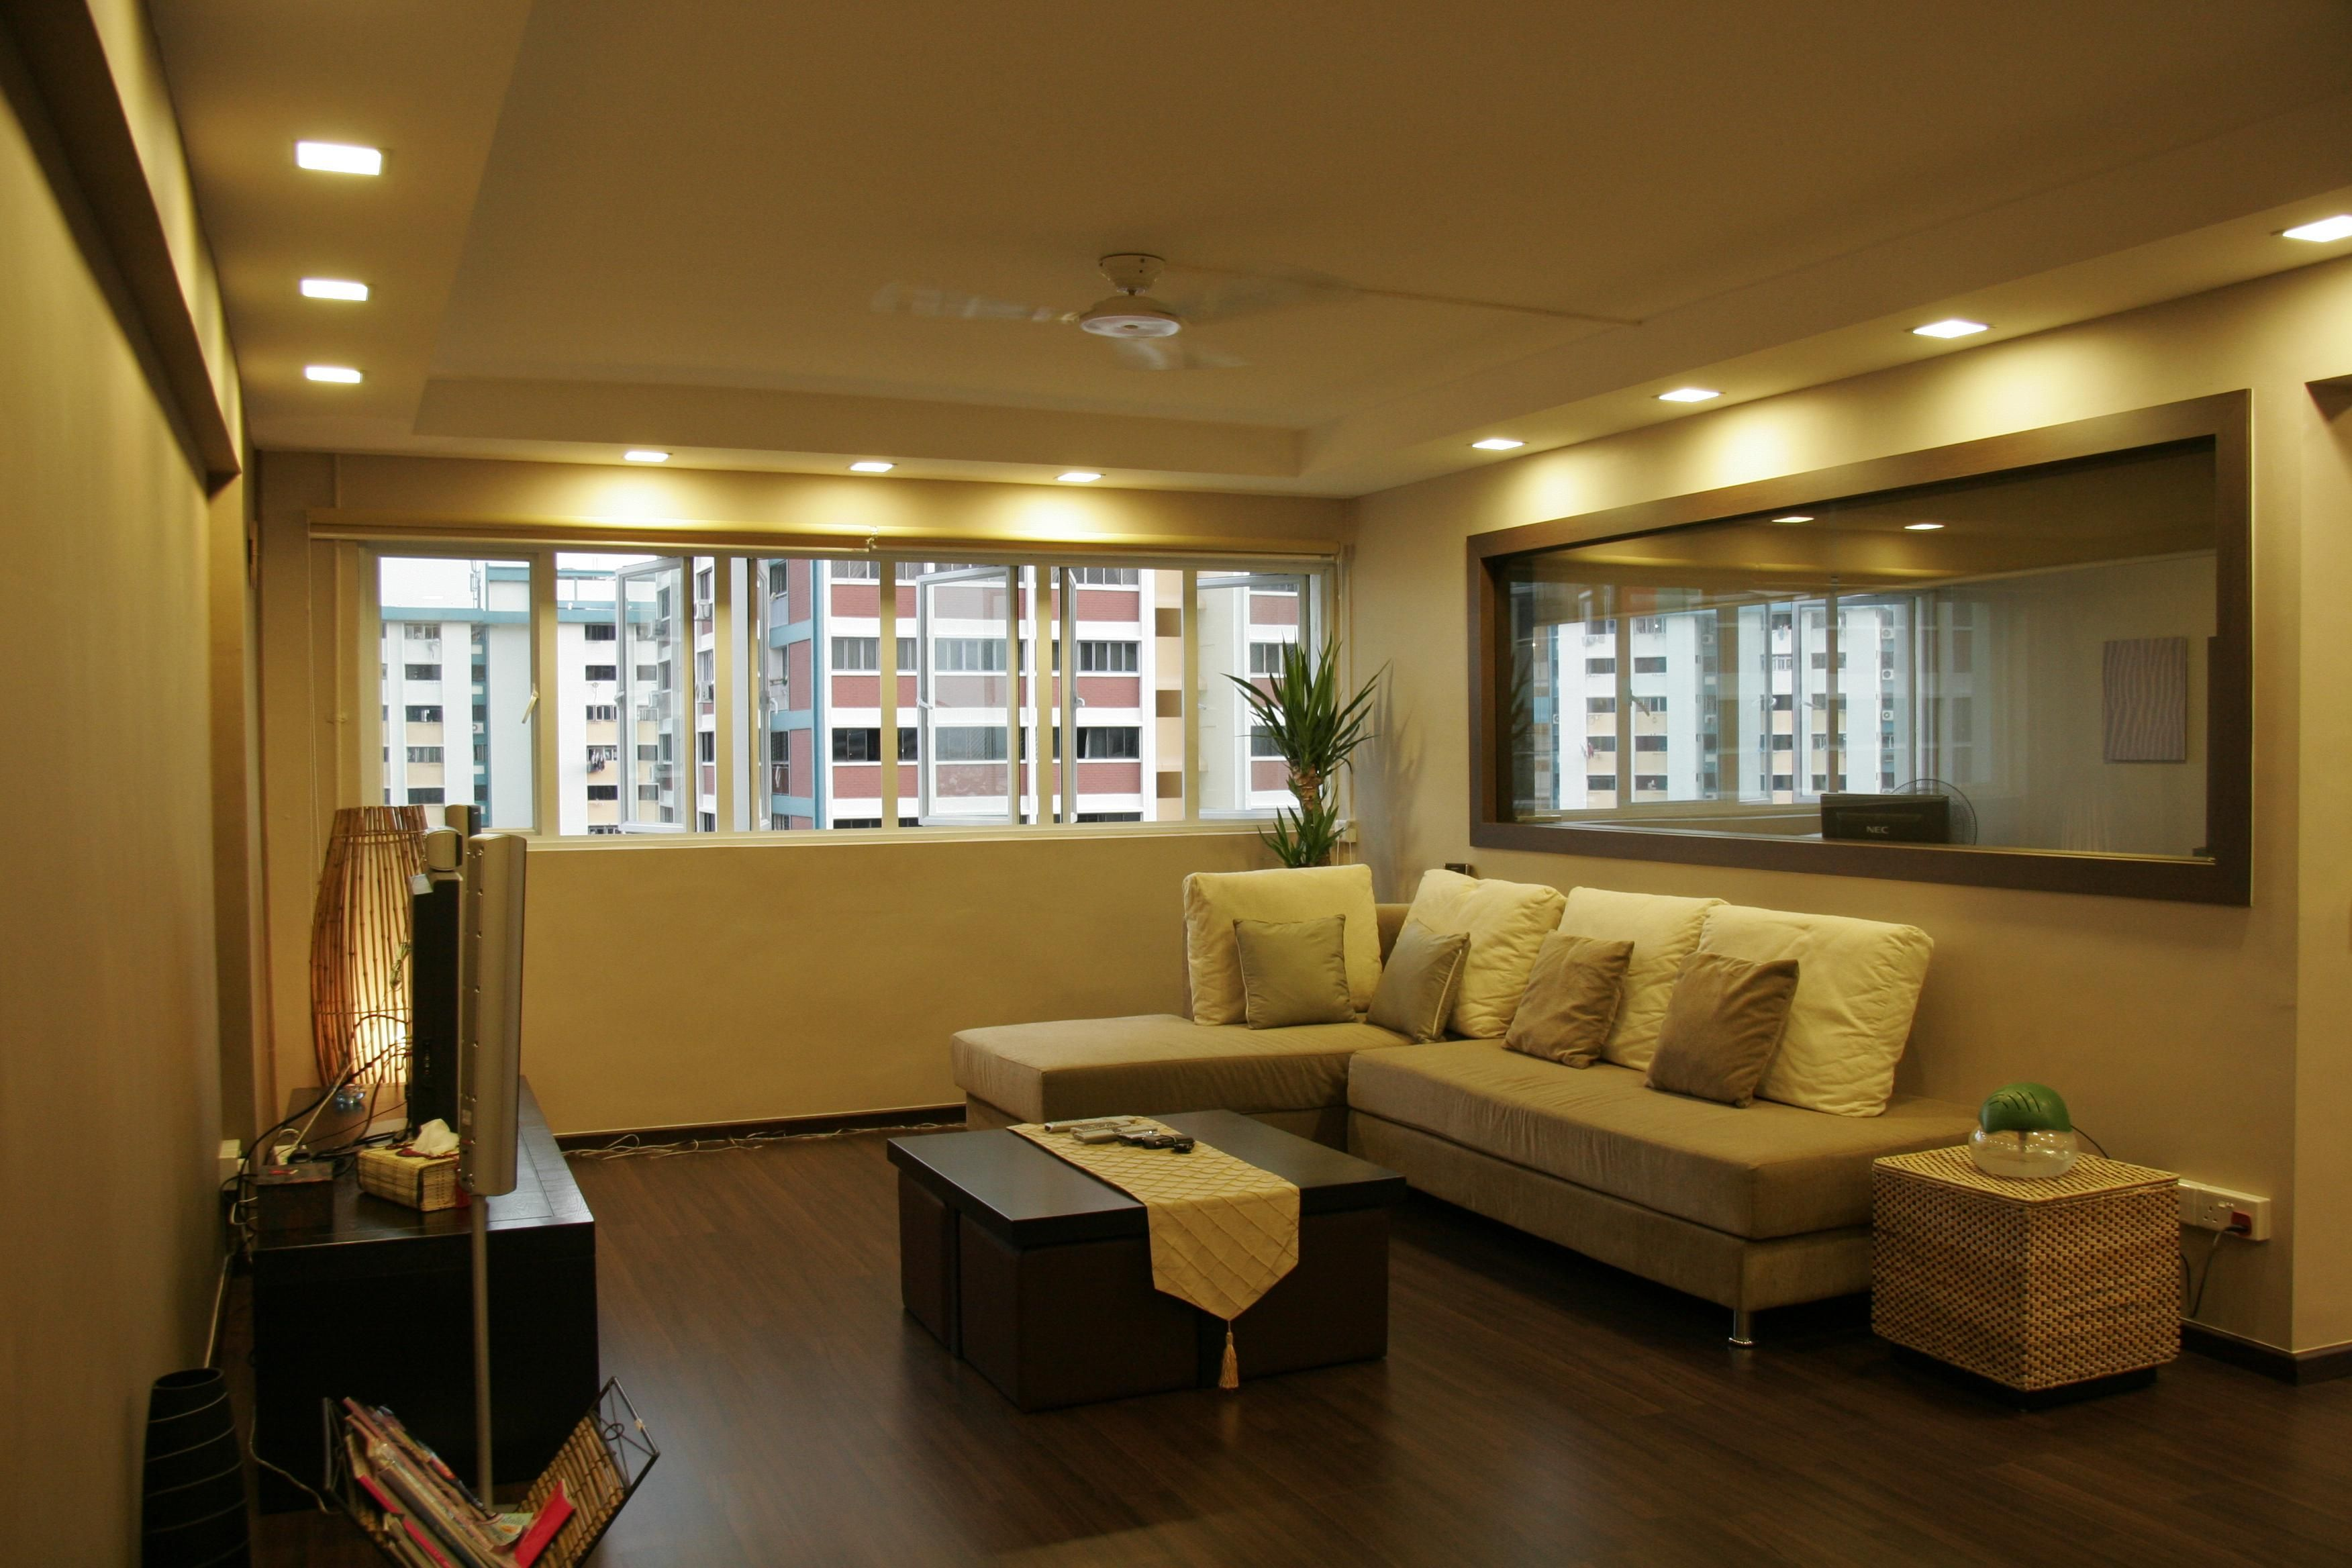 hdb living roomL box n ceiling  Ideas for home reno